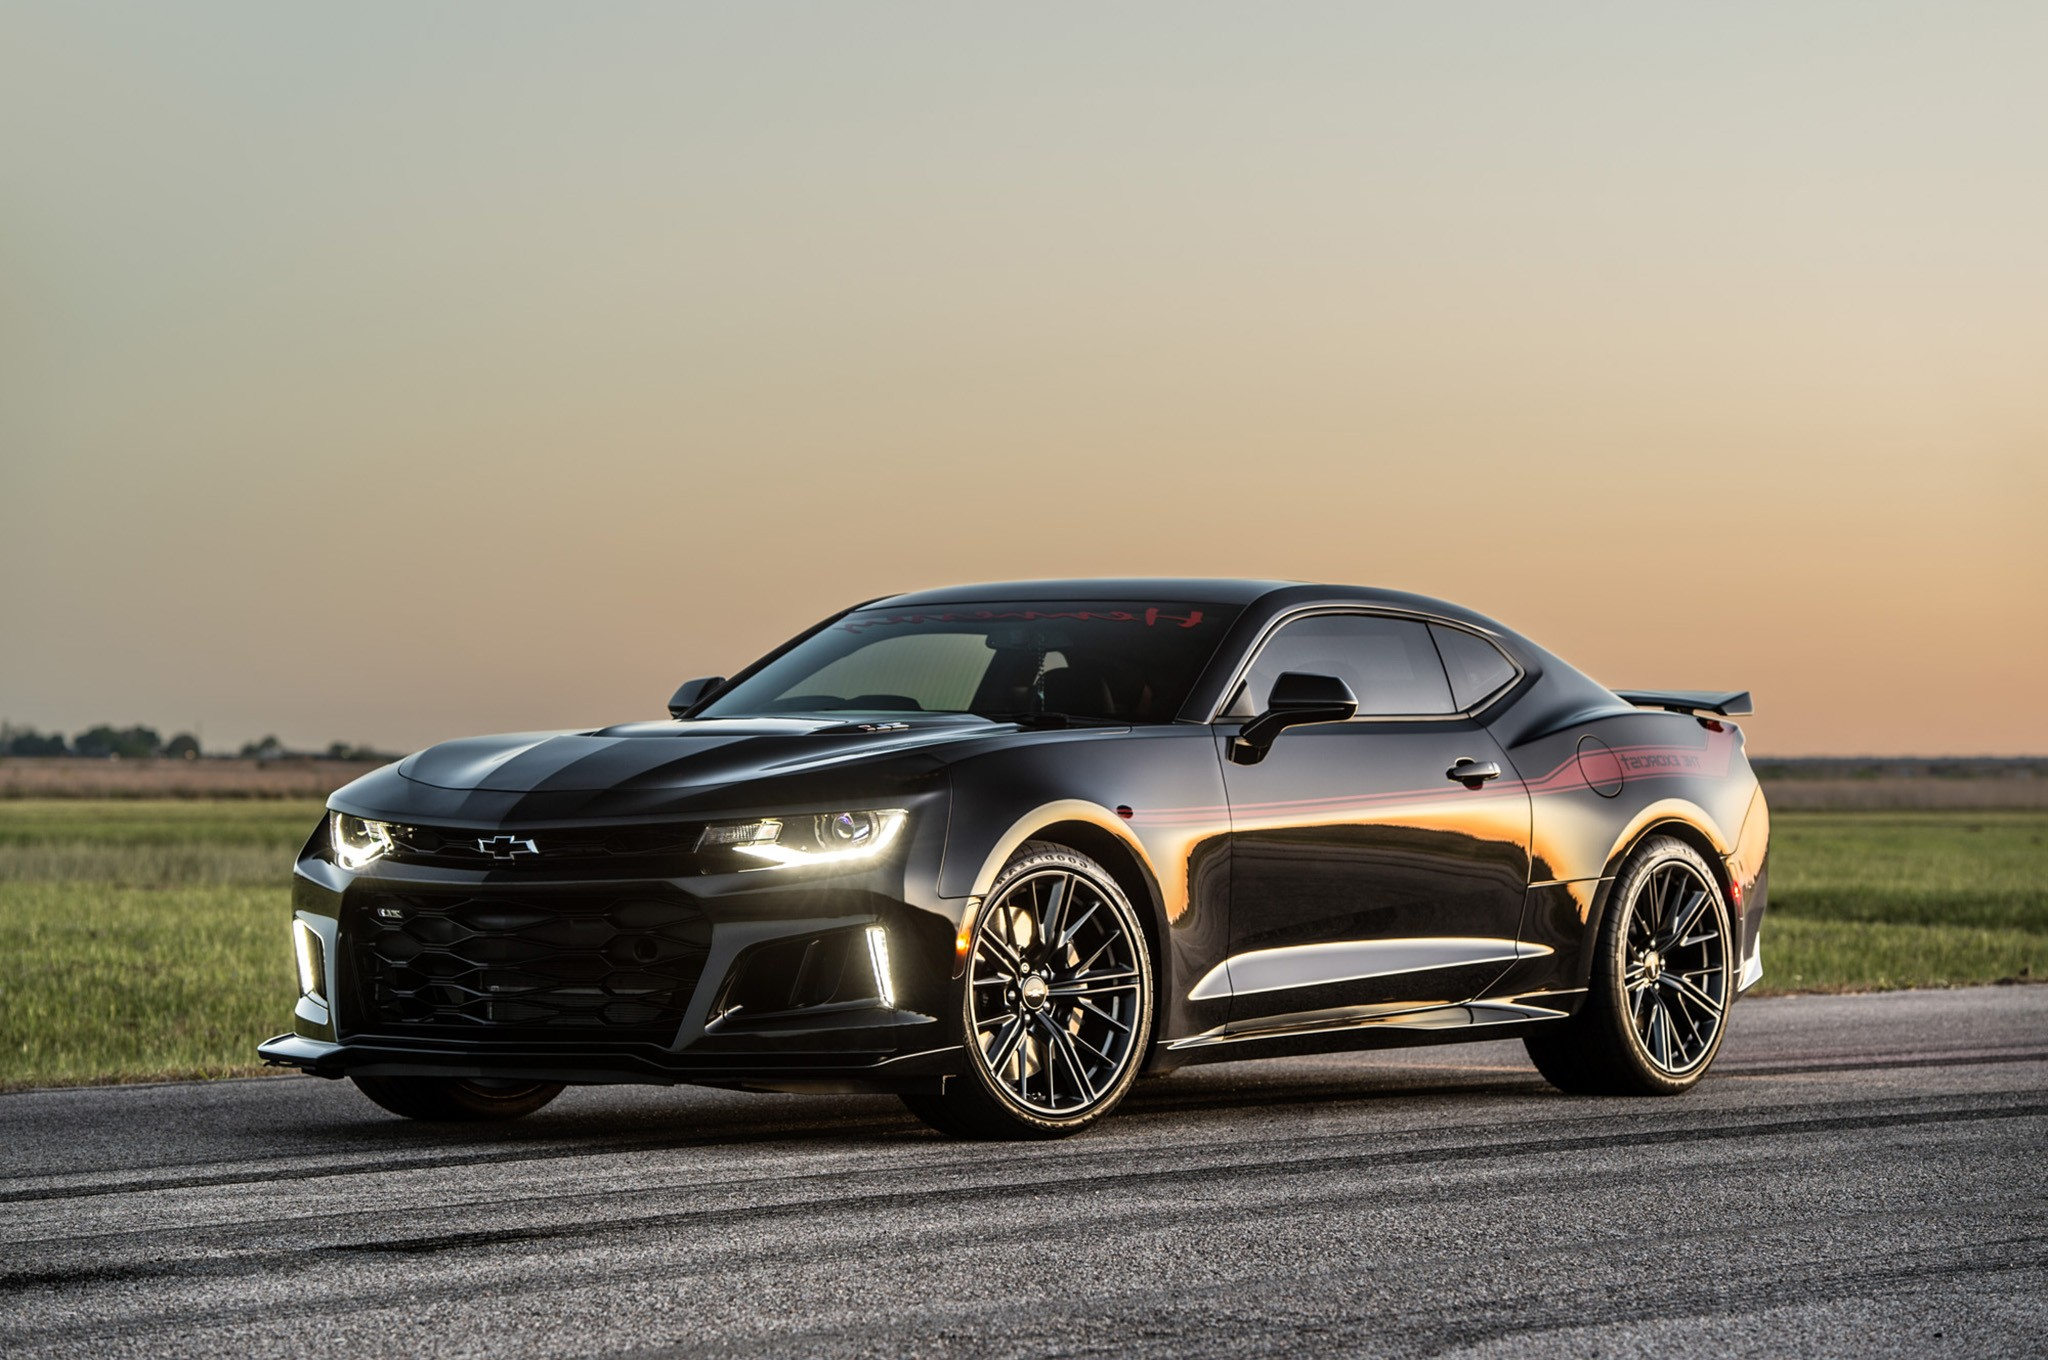 2018 chevrolet camaro 1le new car release date and review 2018 amanda felicia. Black Bedroom Furniture Sets. Home Design Ideas